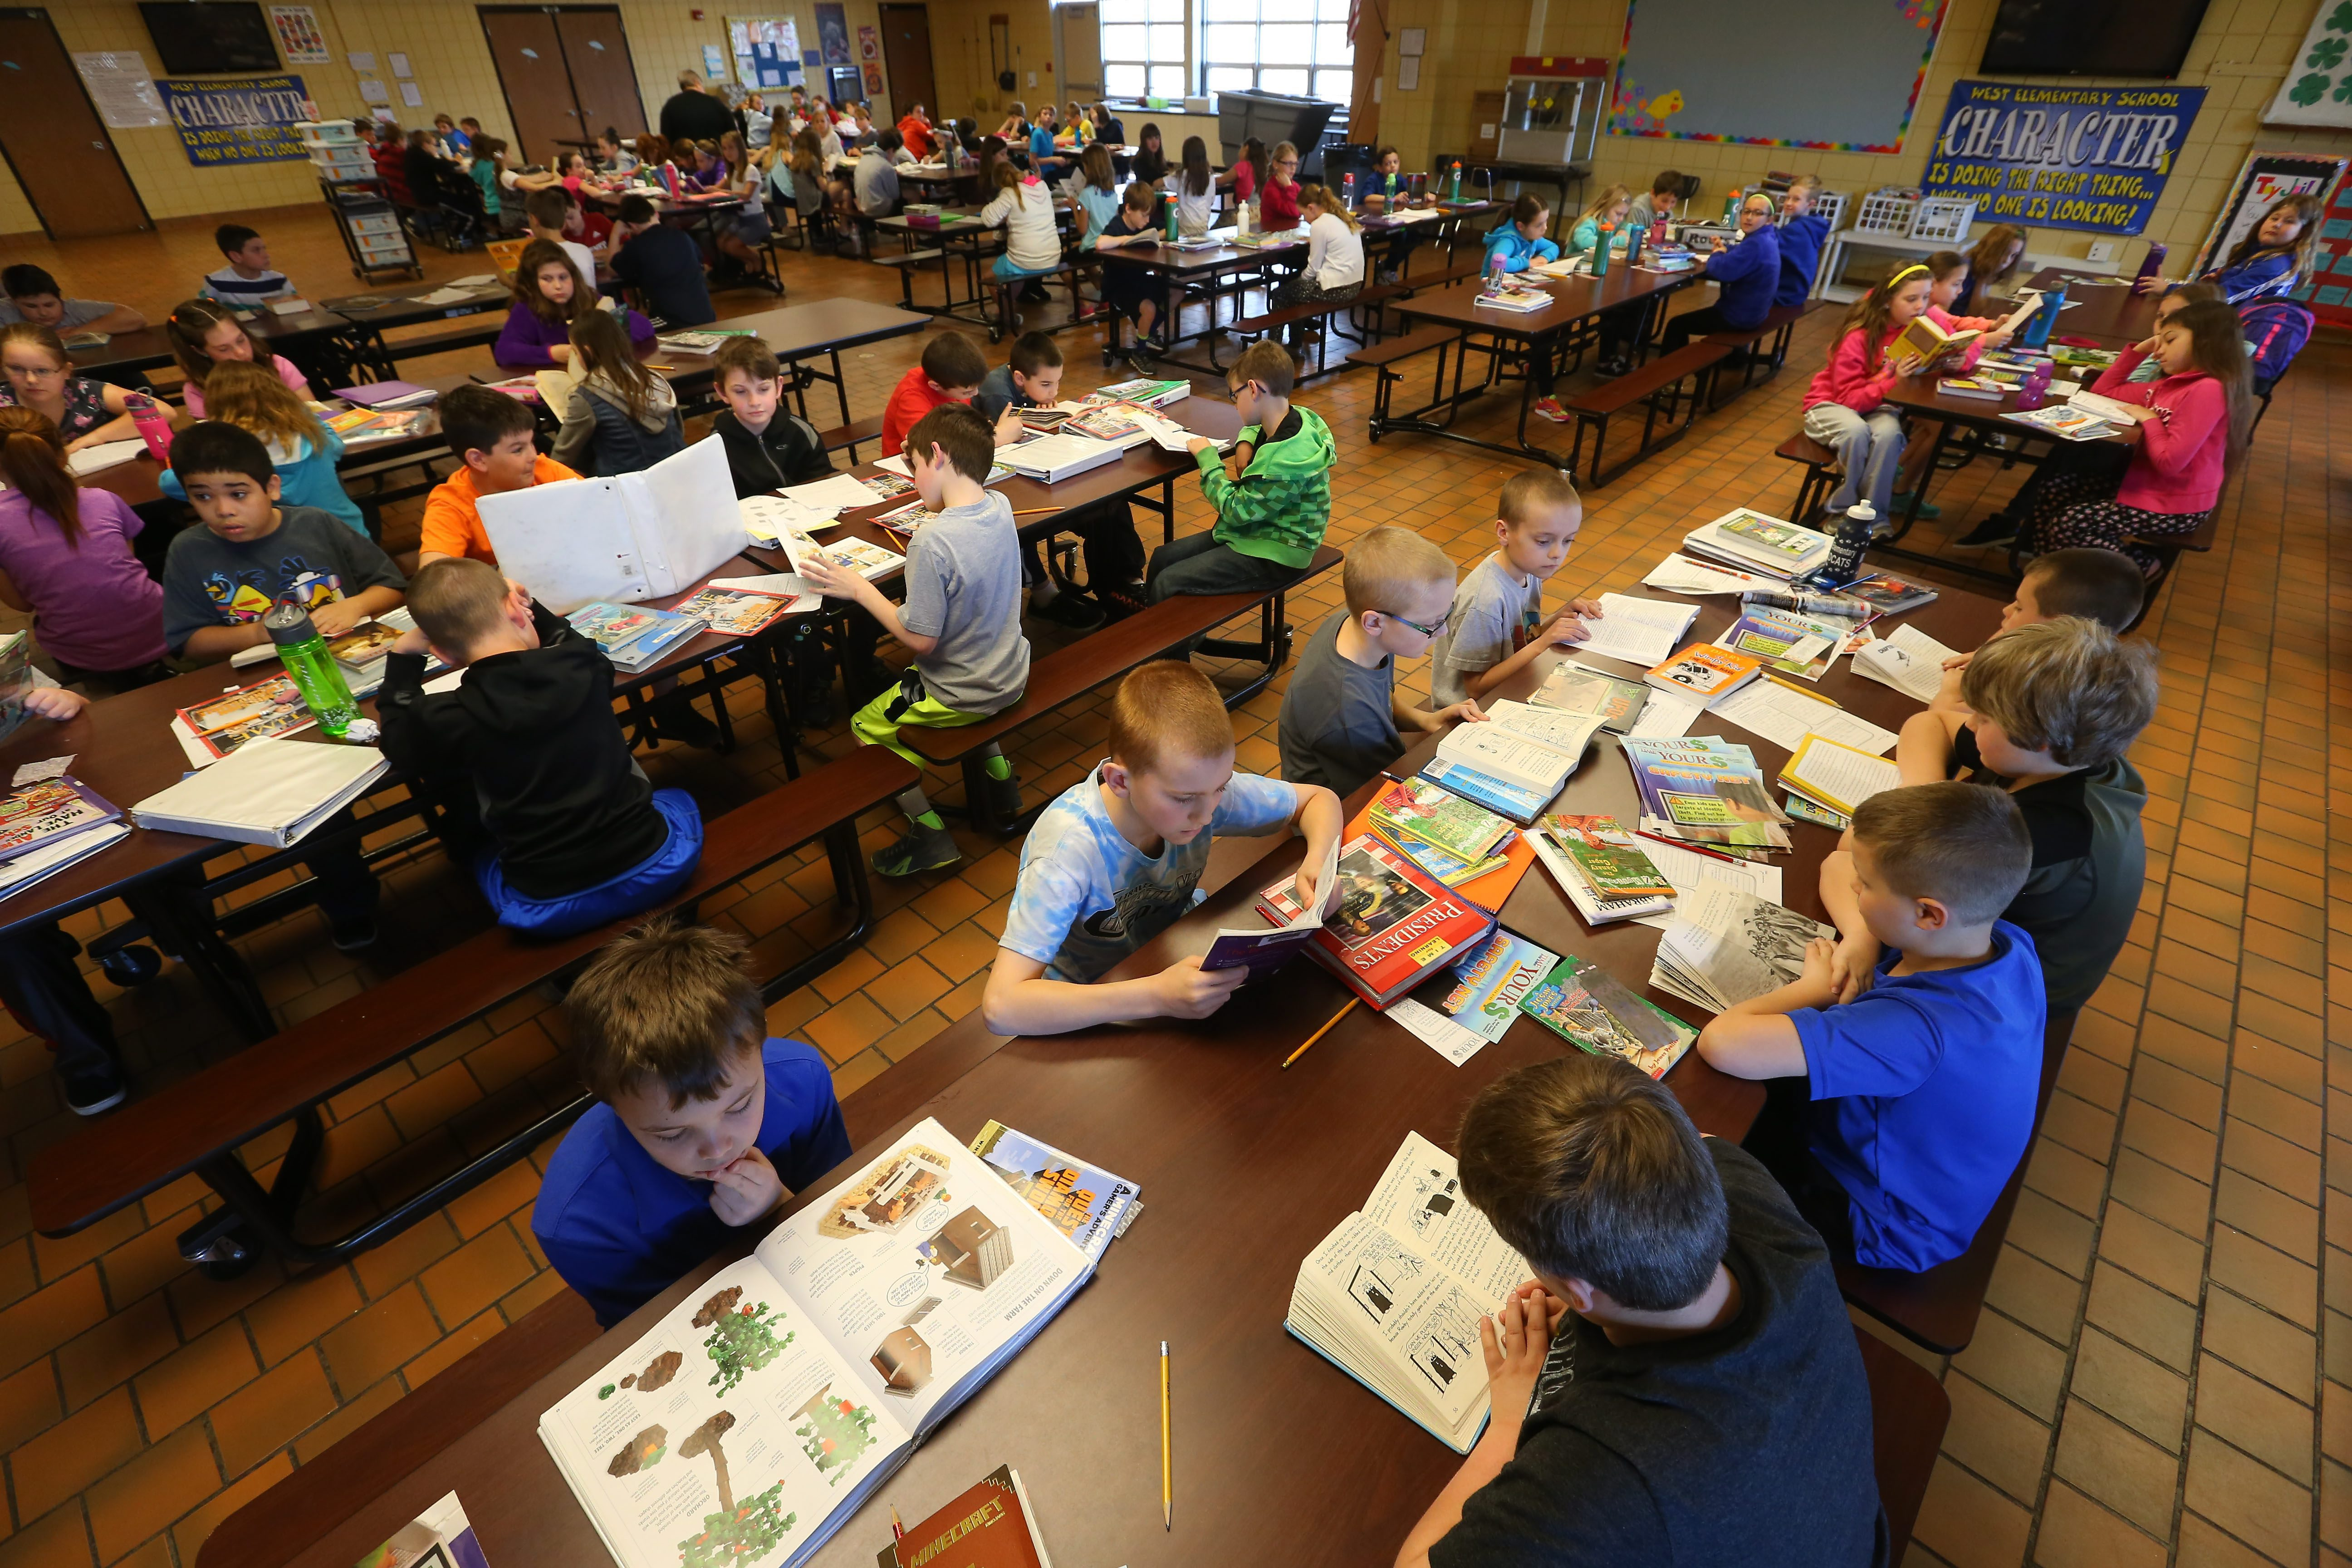 Students in the West Seneca School District opted out of testing in huge numbers in 2015 and 2016, depriving education leaders of valuable information on education in the district. (Mark Mulville/Buffalo News file photo)